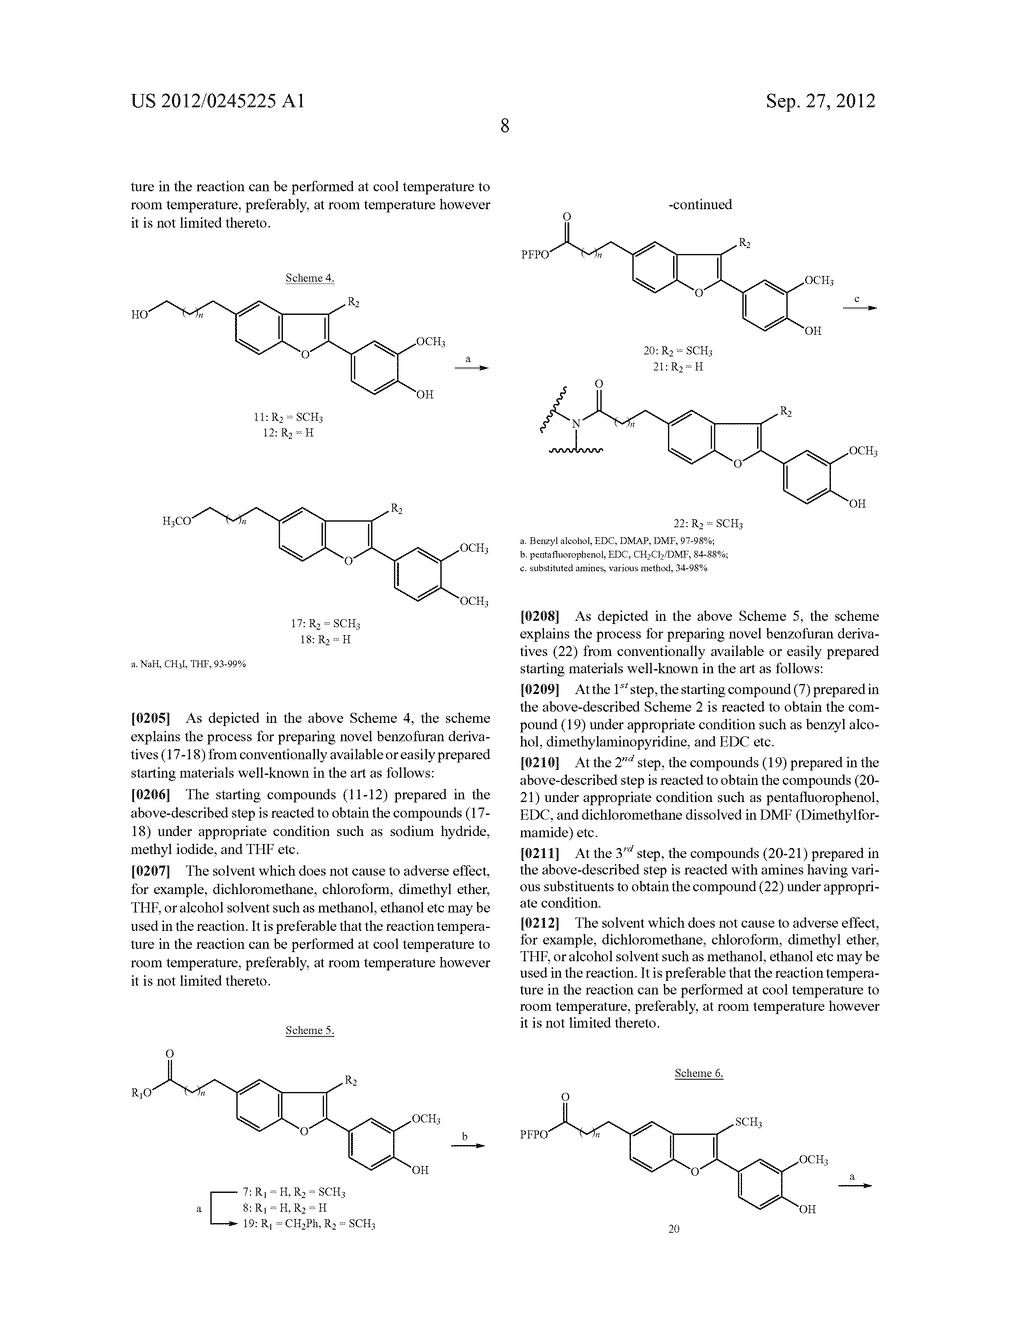 NOVEL BENZOFURAN TYPE DERIVATIVES, A COMPOSITION COMPRISING THE SAME FOR     TREATING OR PREVENTING COGNITIVE DYSFUNCTION AND THE USE THEREOF - diagram, schematic, and image 24